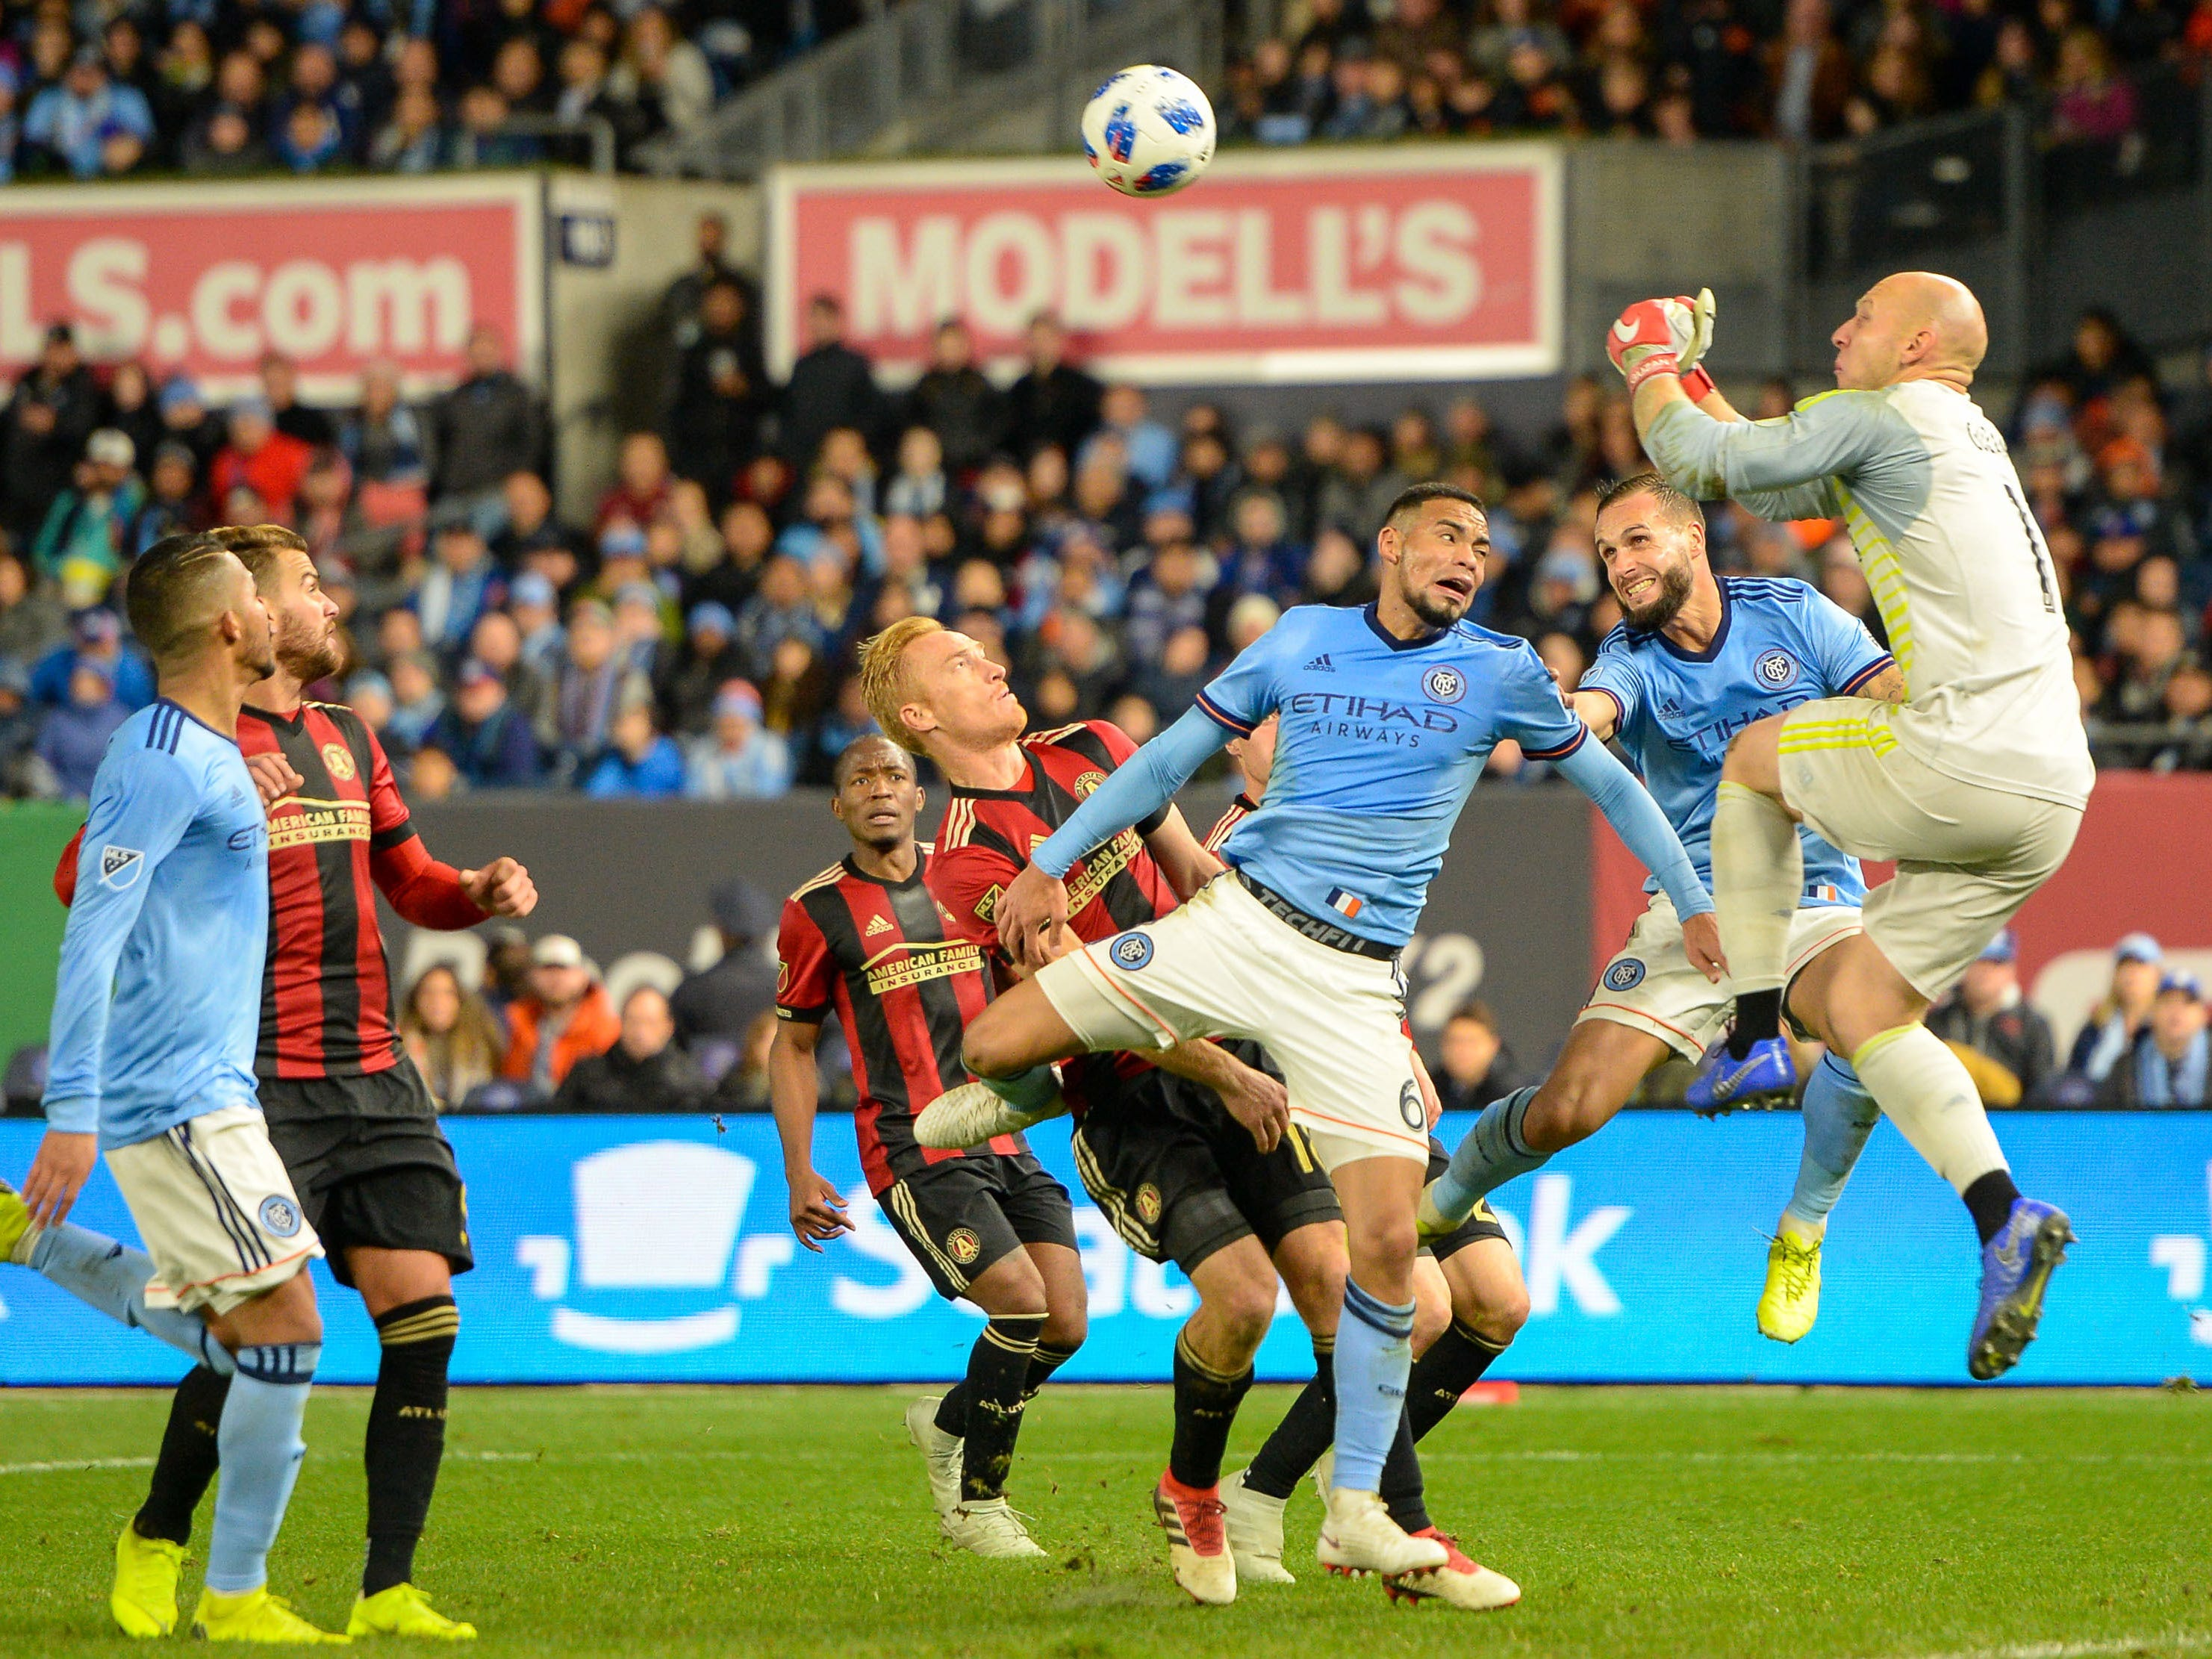 Atlanta United goalkeeper Brad Guzan punches the ball away from New York City FC players during the second half at Yankee Stadium.